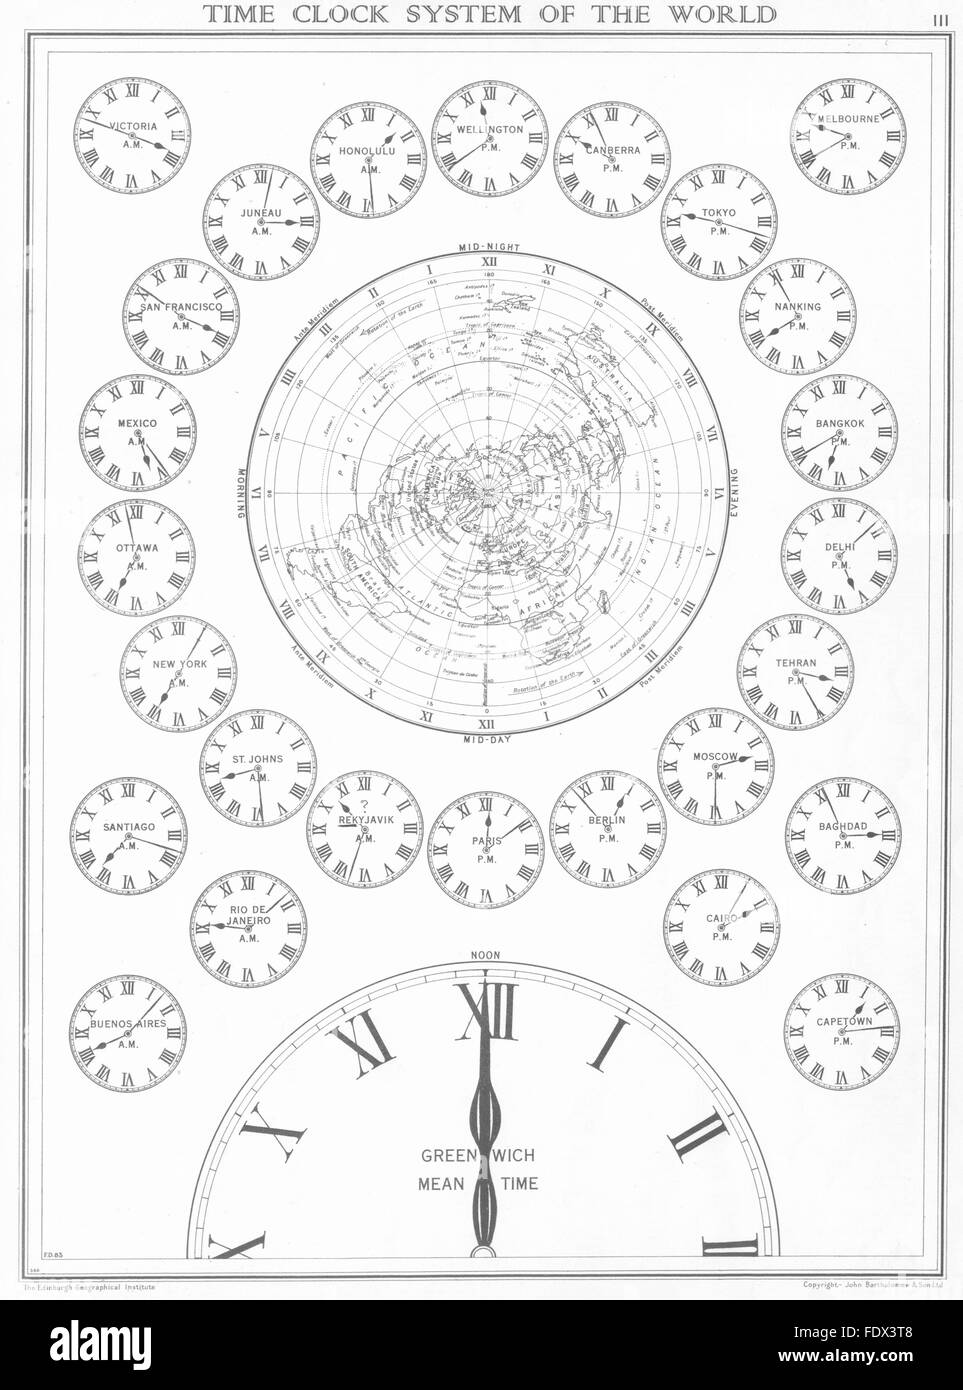 WORLD: Time Clock System of the World, 1938 vintage map Stock Photo